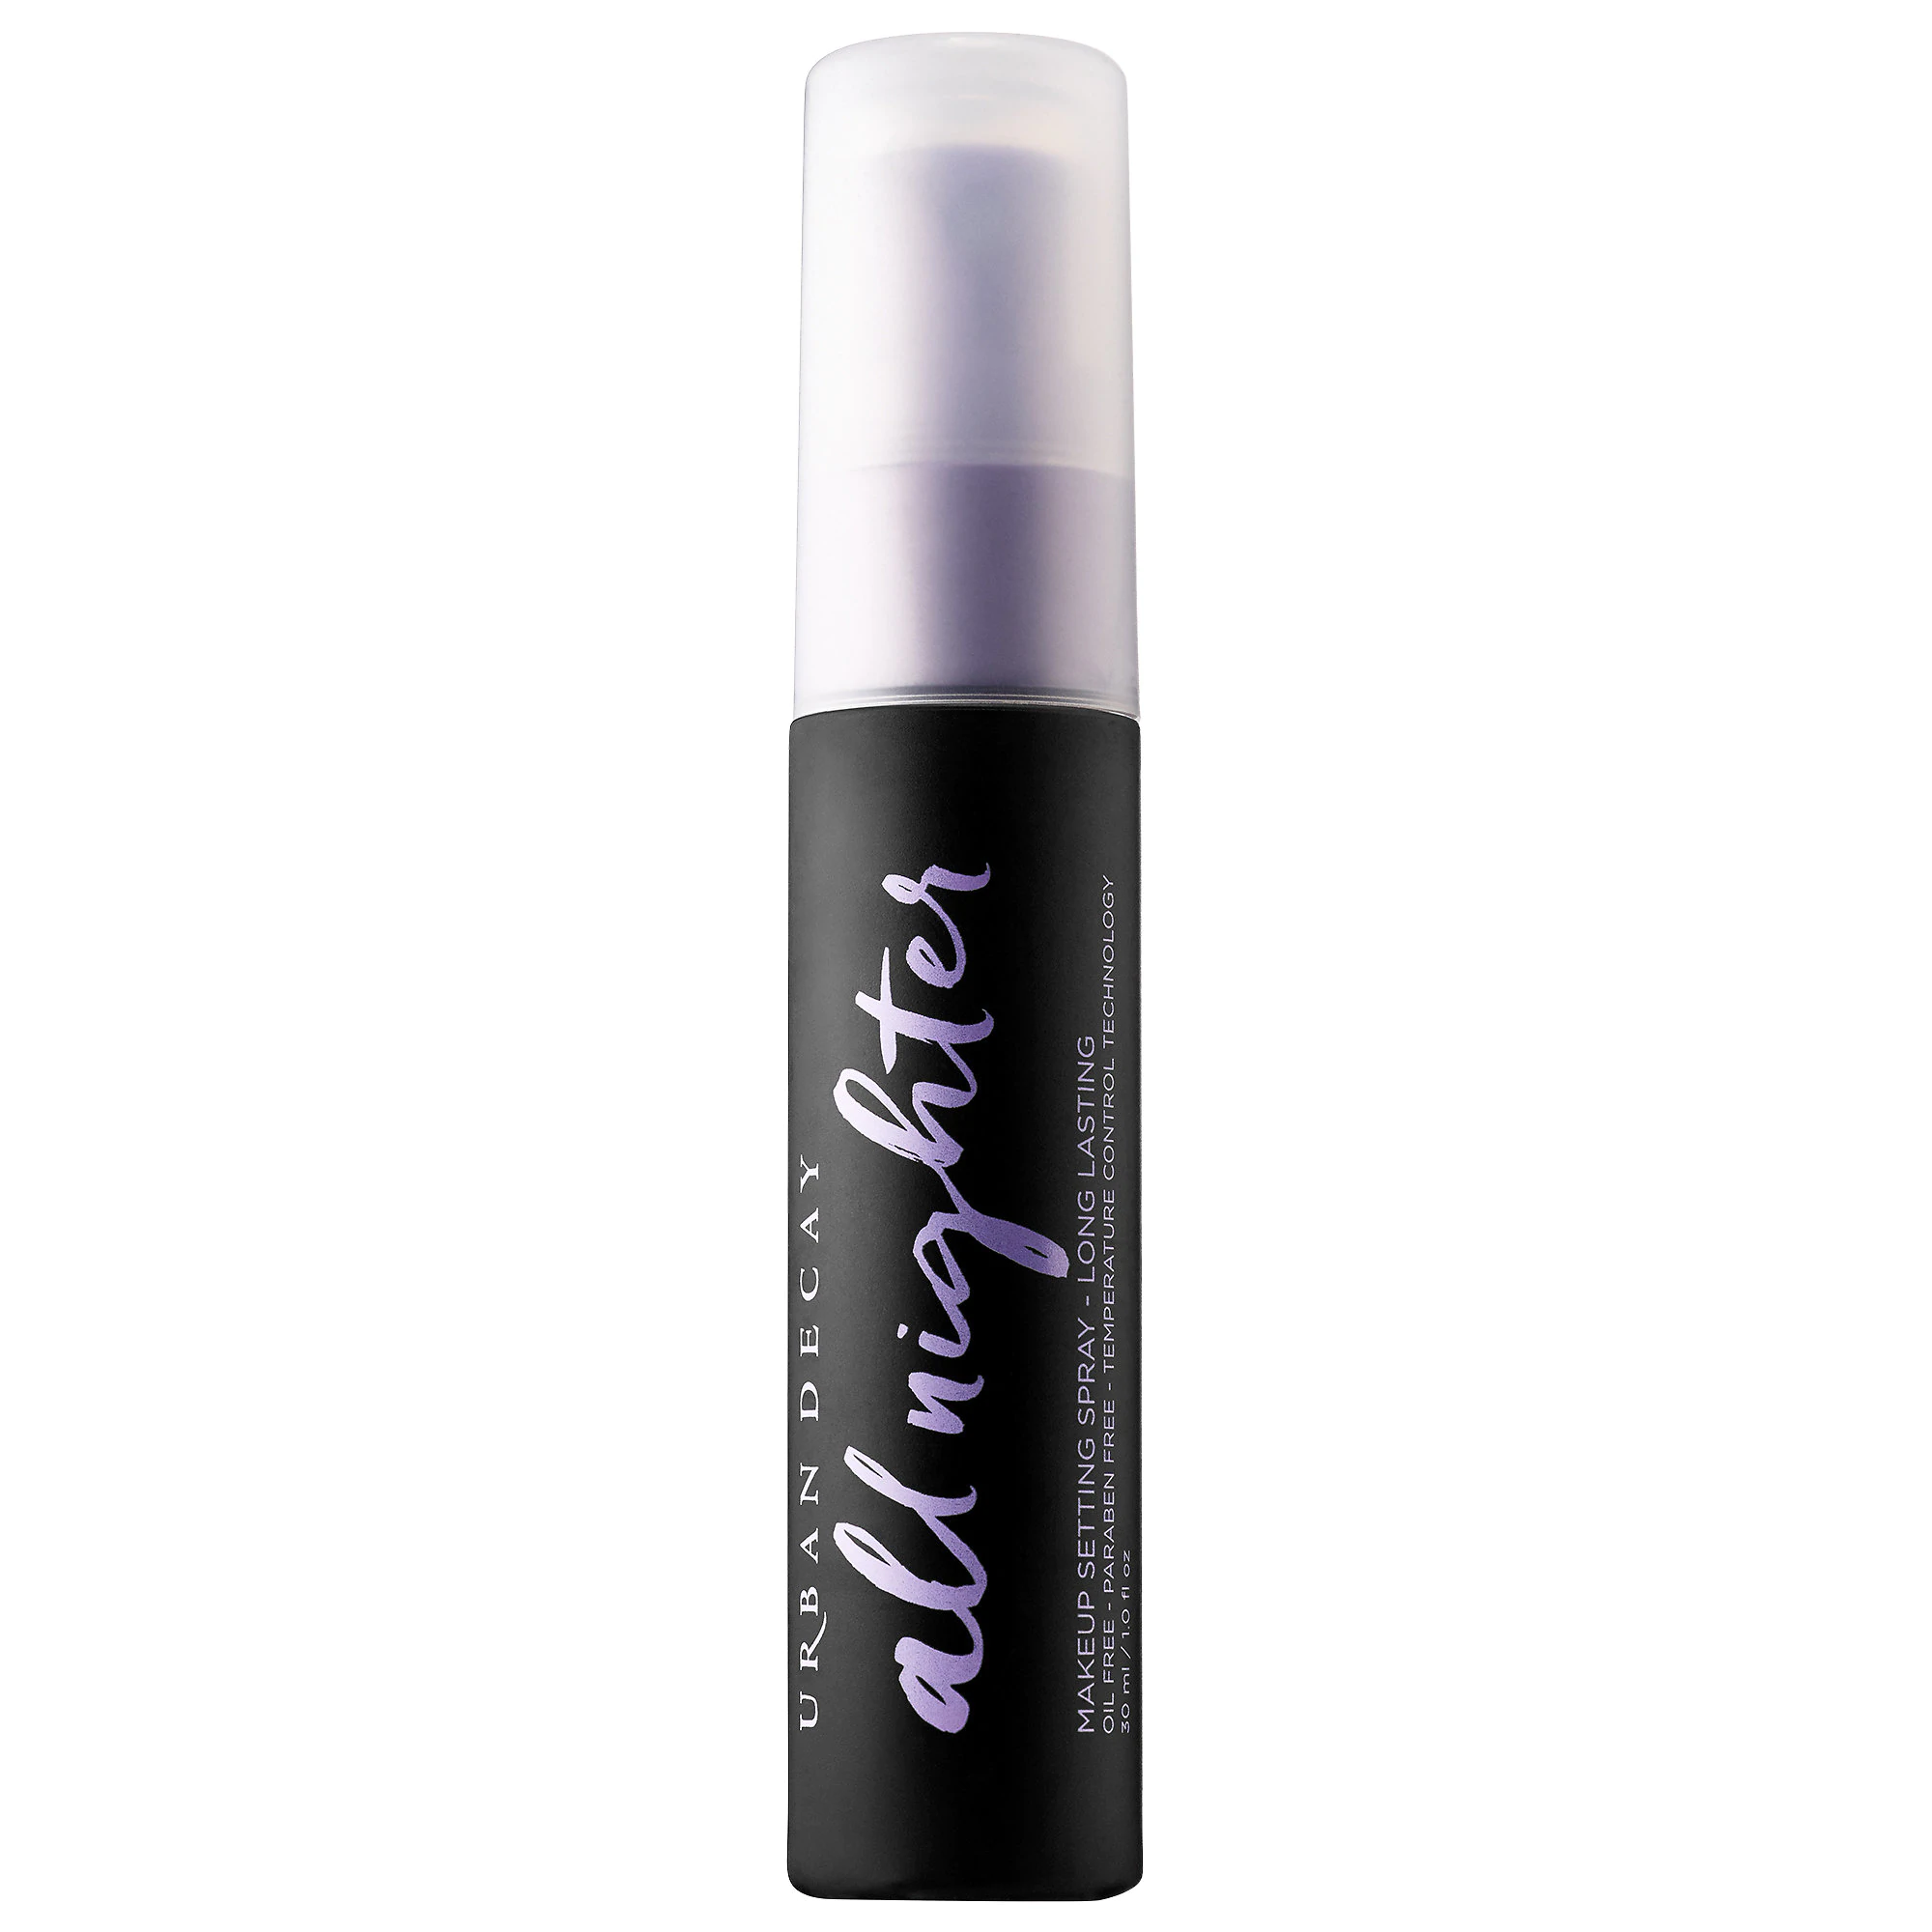 Urban_Decay_All_Nighter_Setting_Spray_3.png